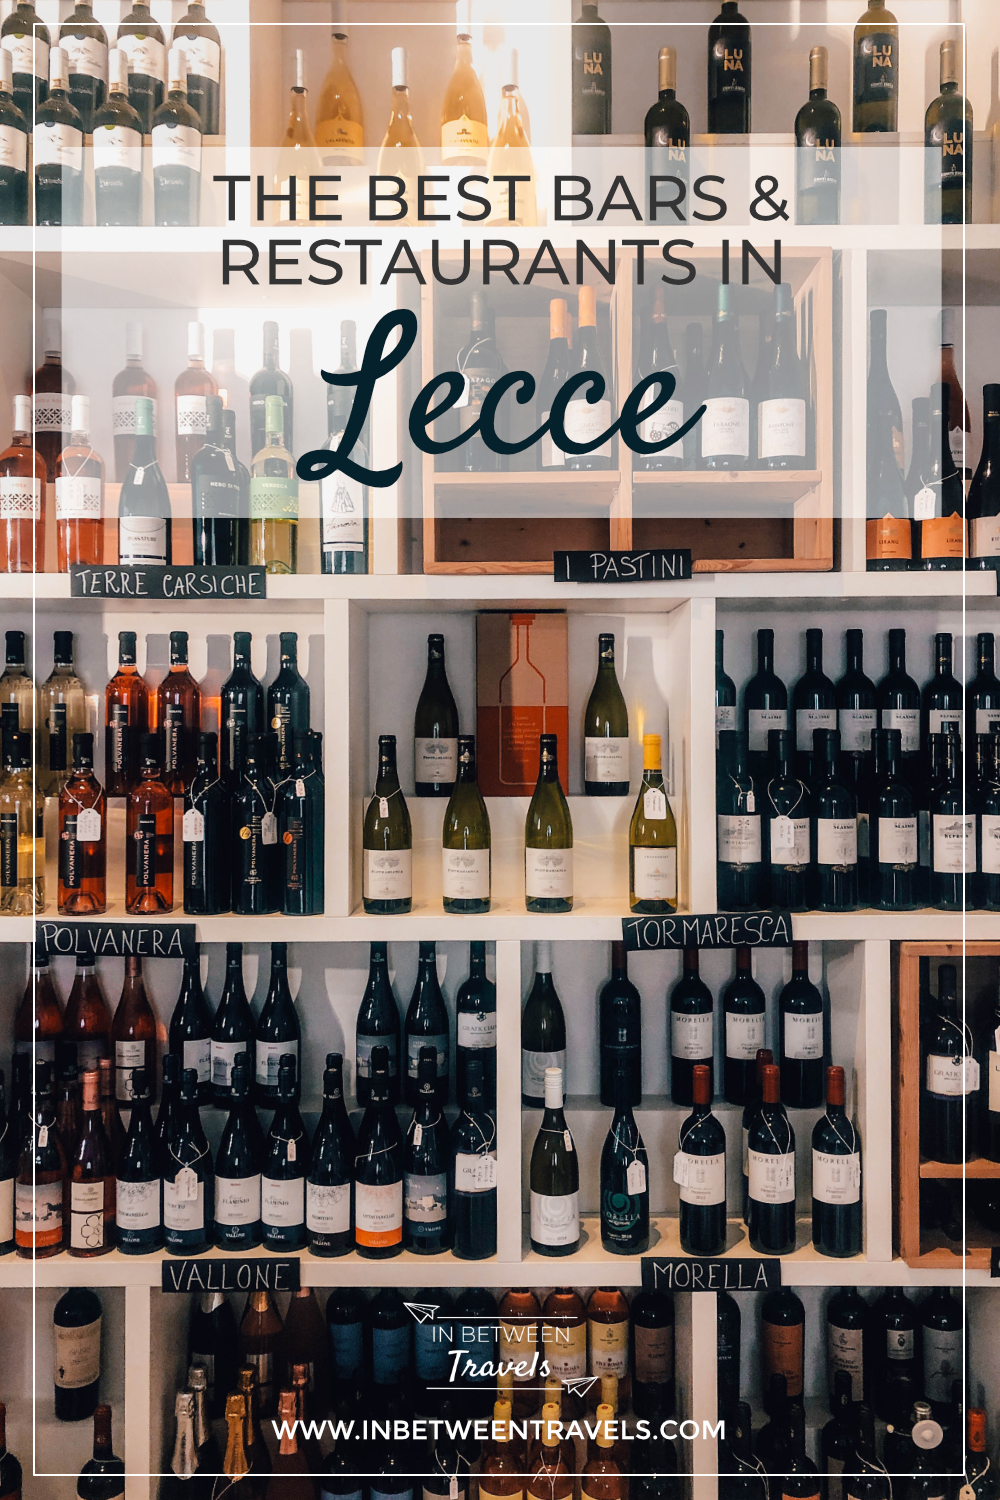 The Best Bars & Restaurants in Lecce, Italy